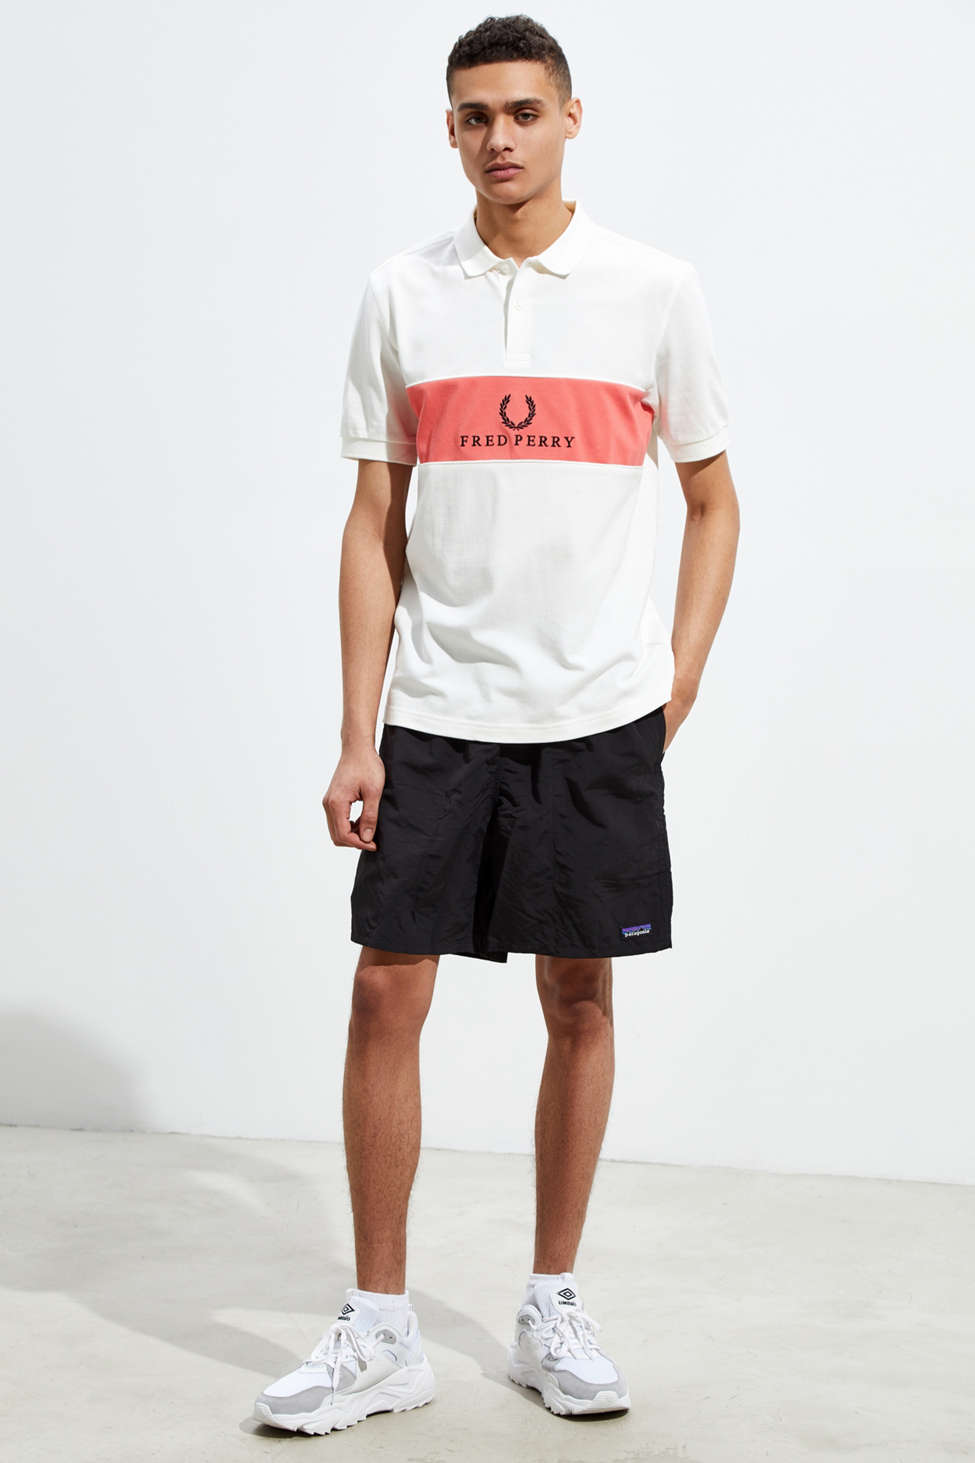 Fred Perry Panel Piped Pique Knit Polo Shirt by Fred Perry